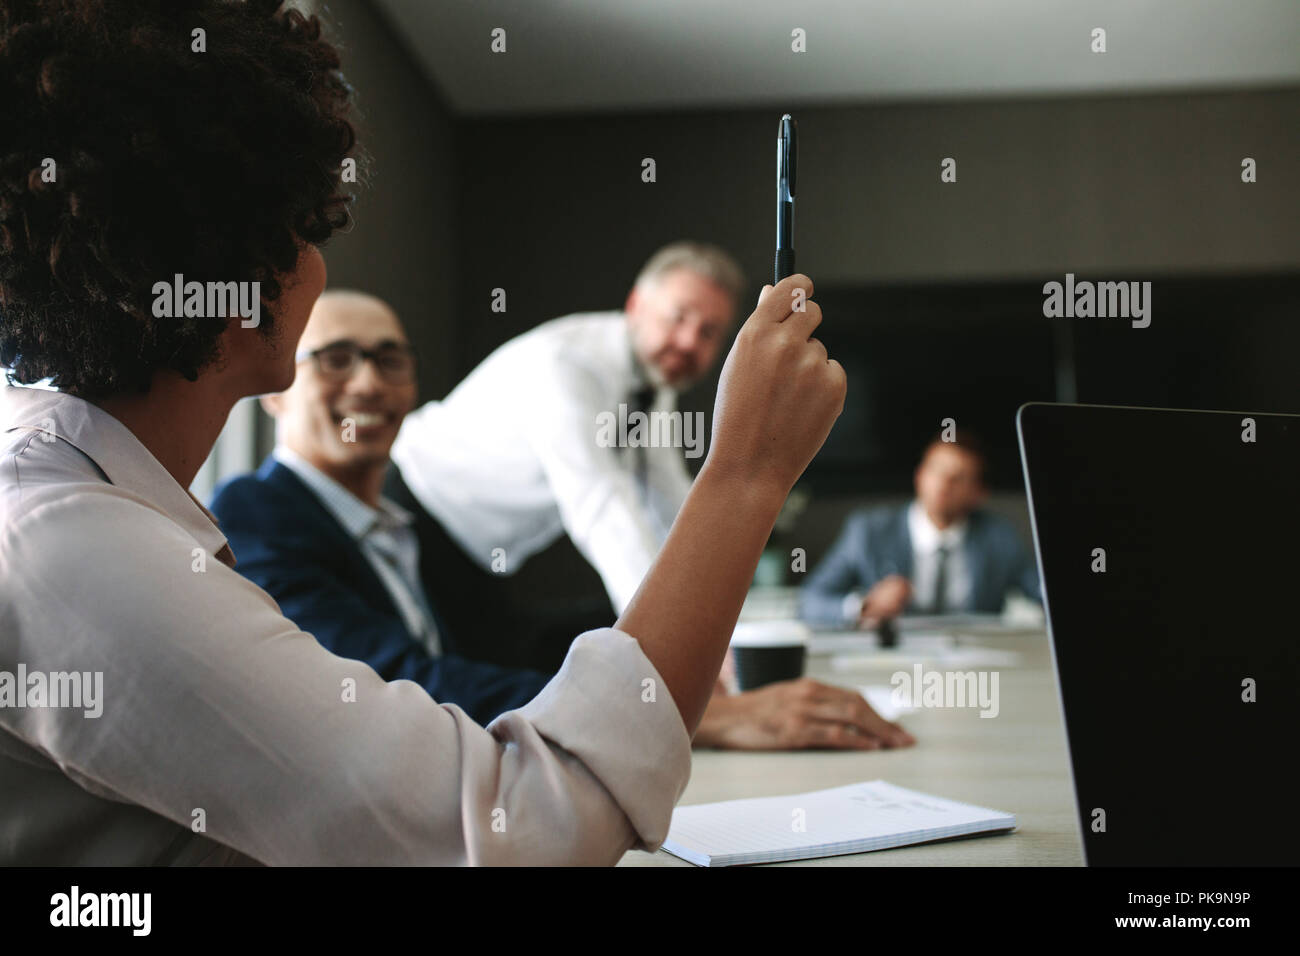 Woman asking a query to the team during a meeting. Business people having a meeting in board room. - Stock Image